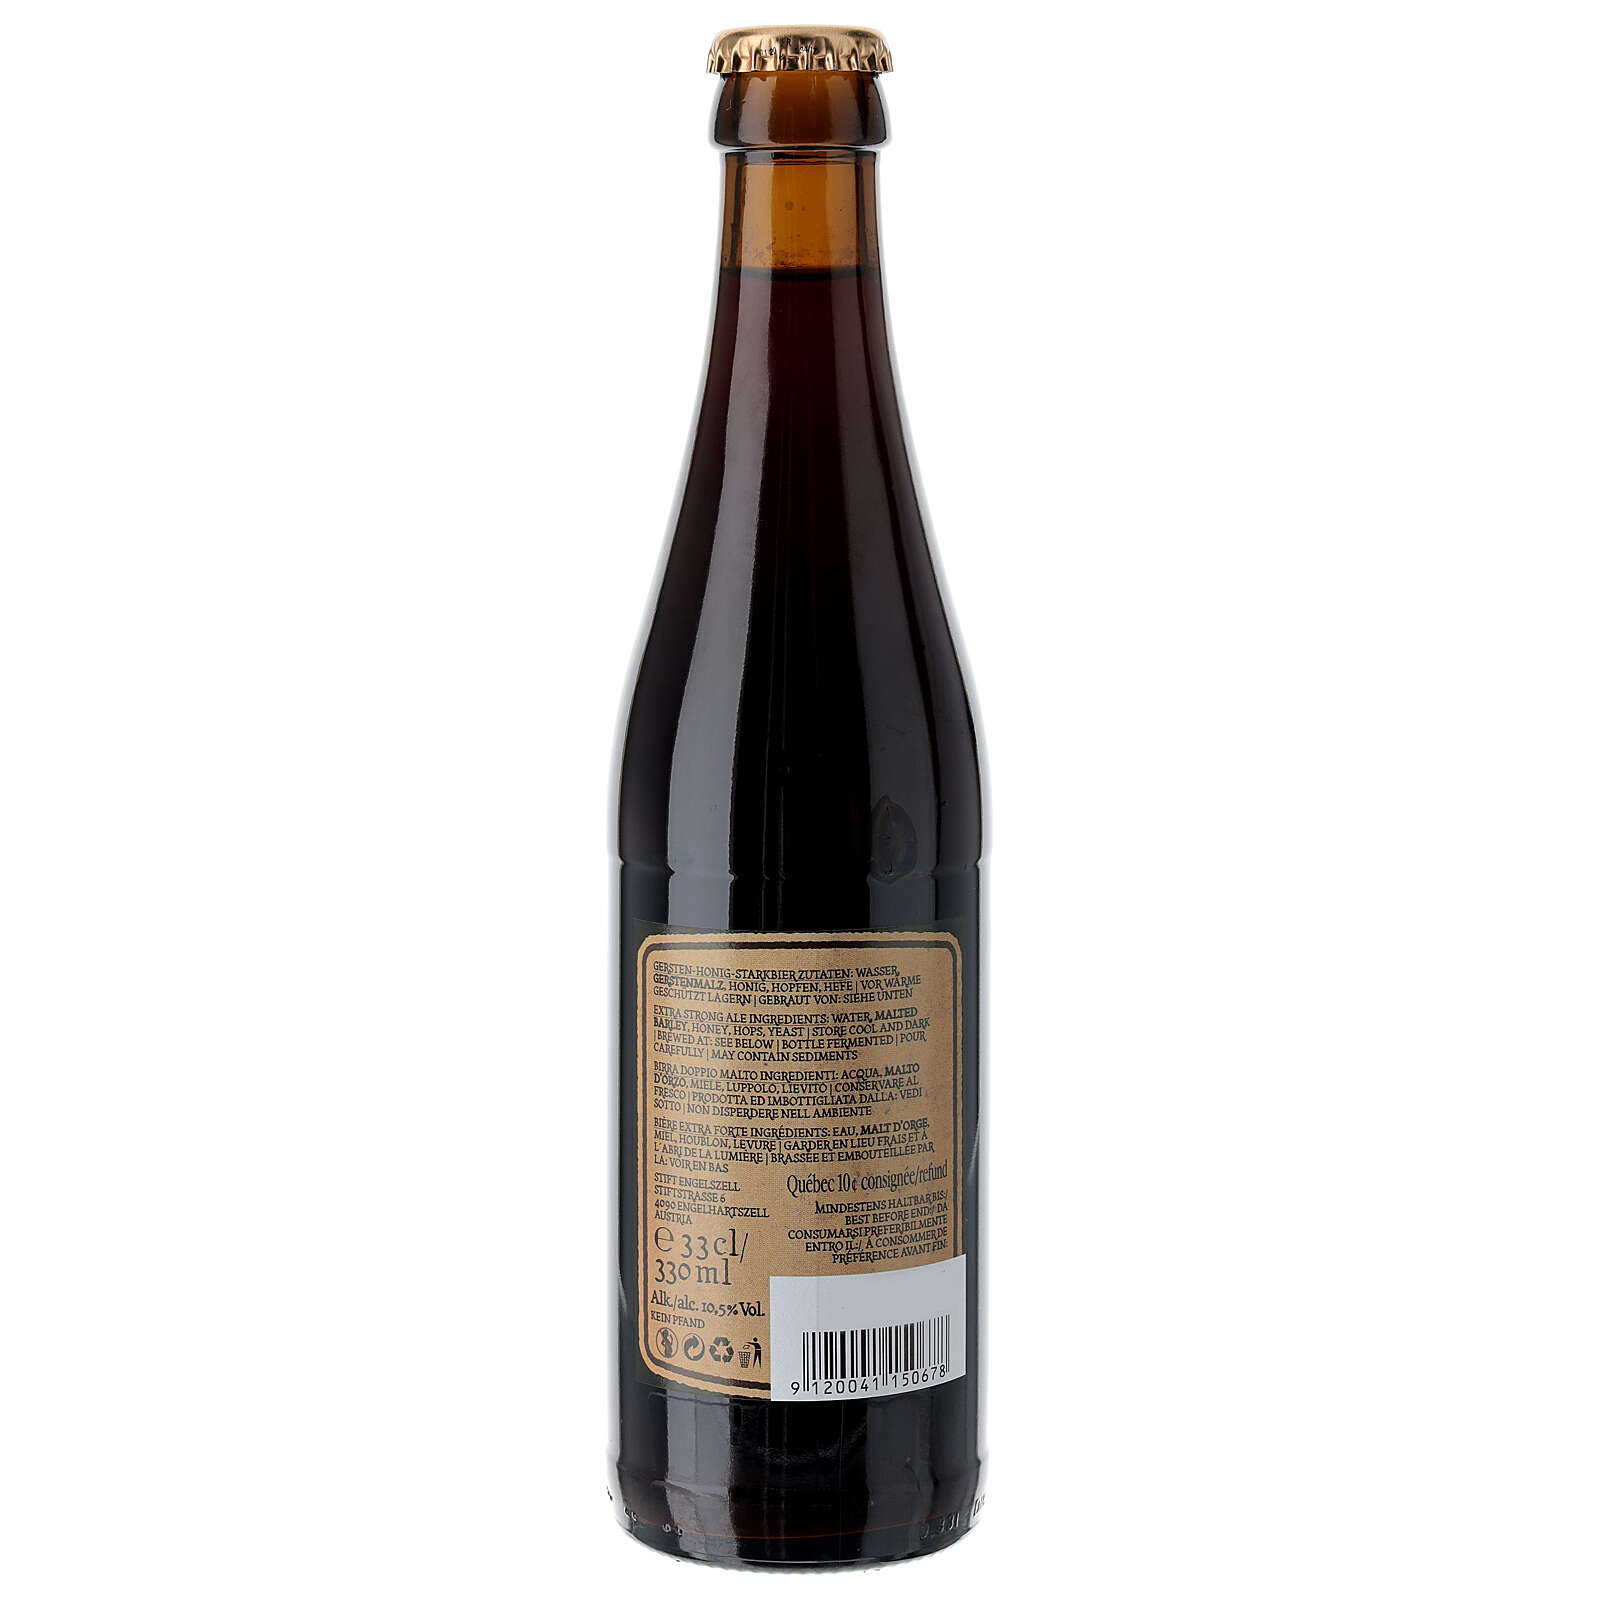 Engelszell Gregorius Trappist beer authenticity brand 33 cl 3